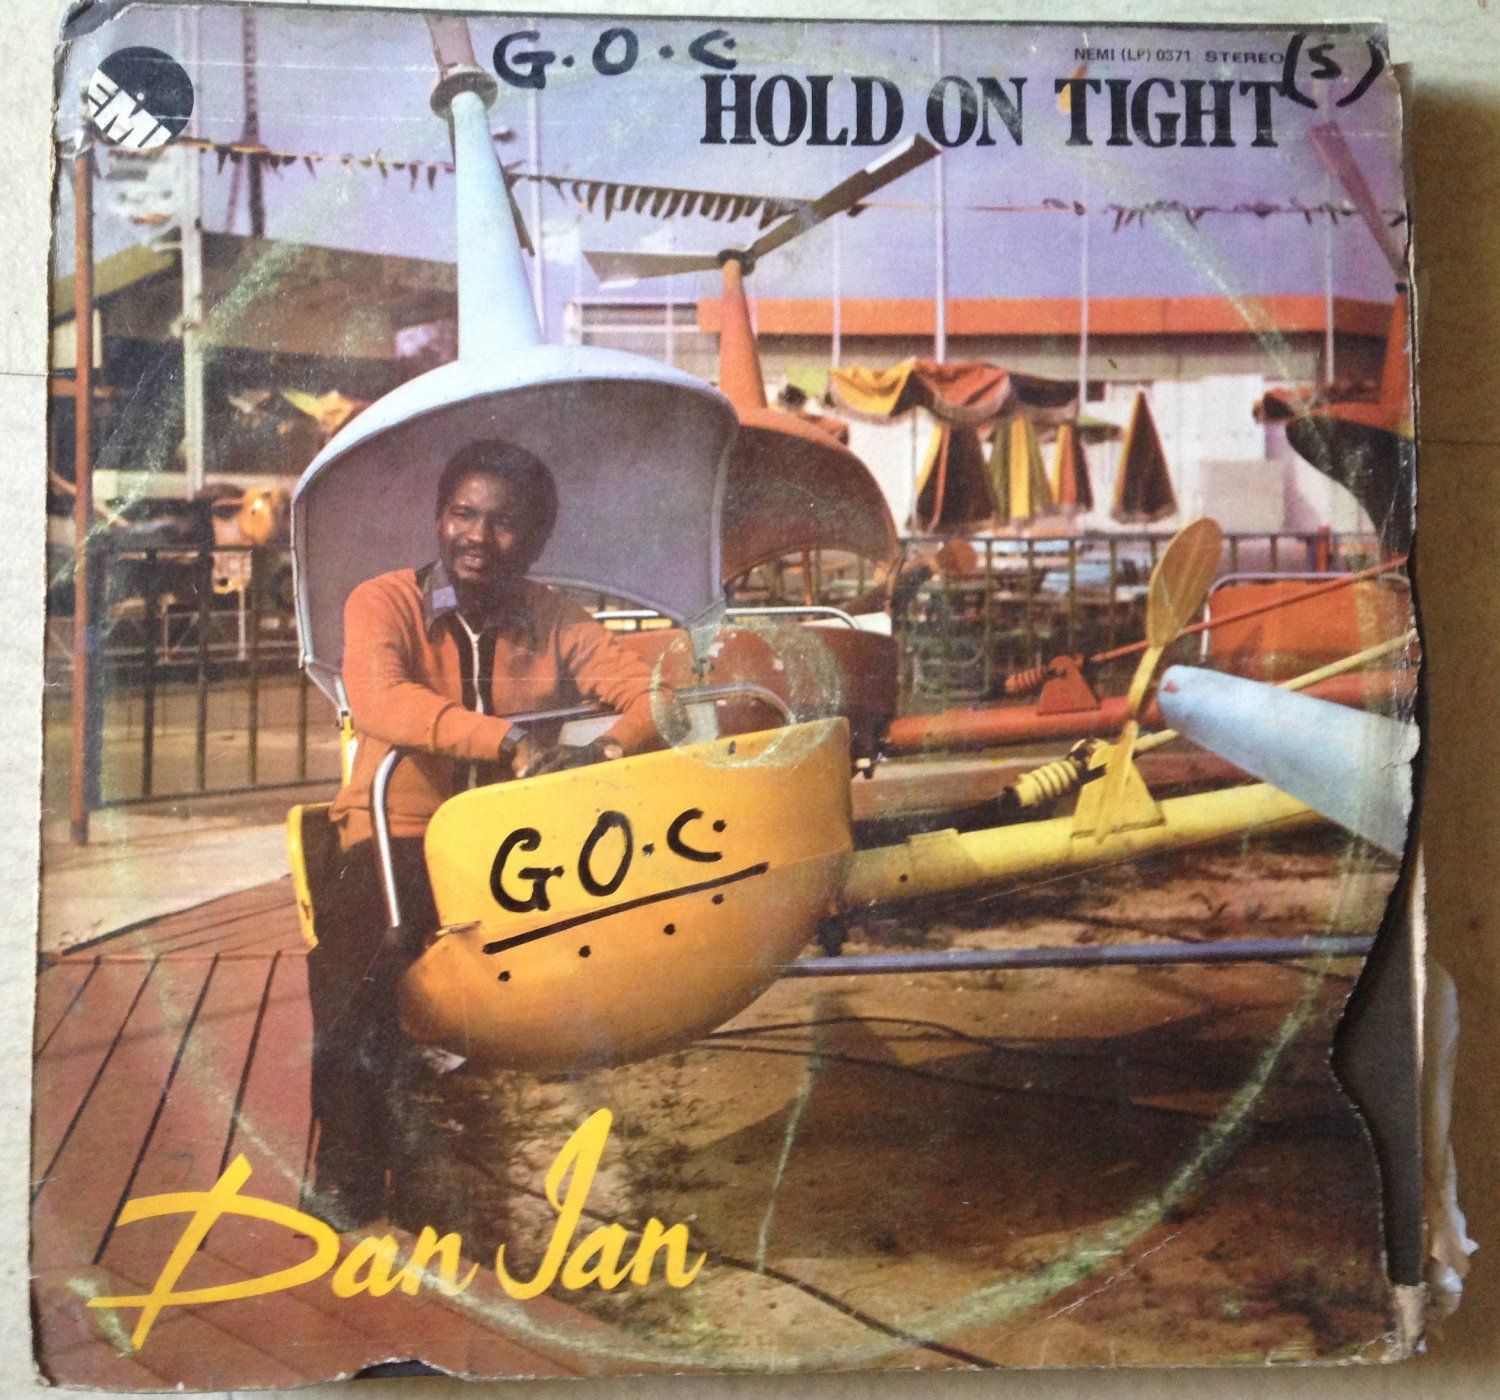 DAN IAN LP hold on tight REGGAE FUNK NIGERIA mp3 LISTEN